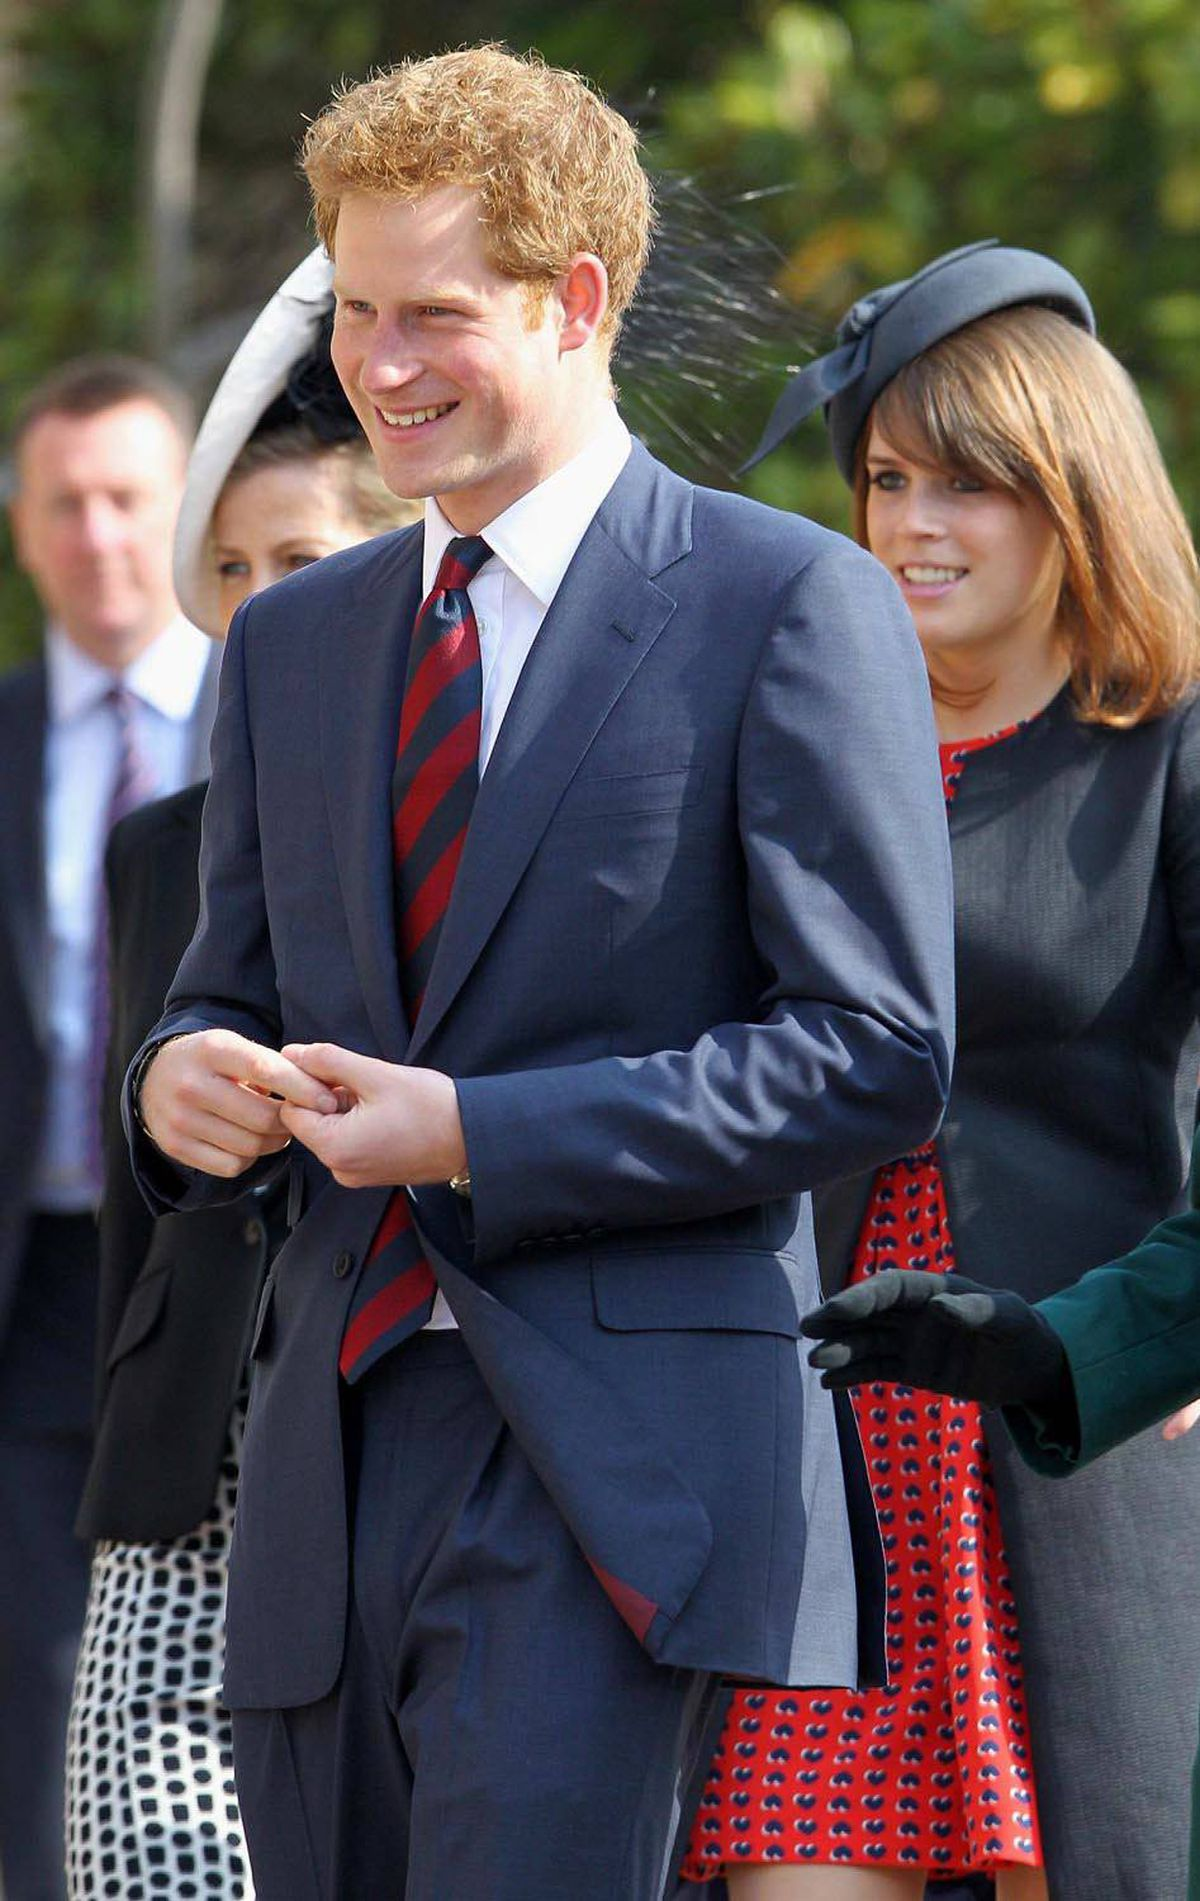 DAPPER Britain's Prince Harry arrives with Princess Eugenie for a thanksgiving service for the Queen Mother and Princess Margaret at St George's Chapel in Windsor, England March 30, 2012.